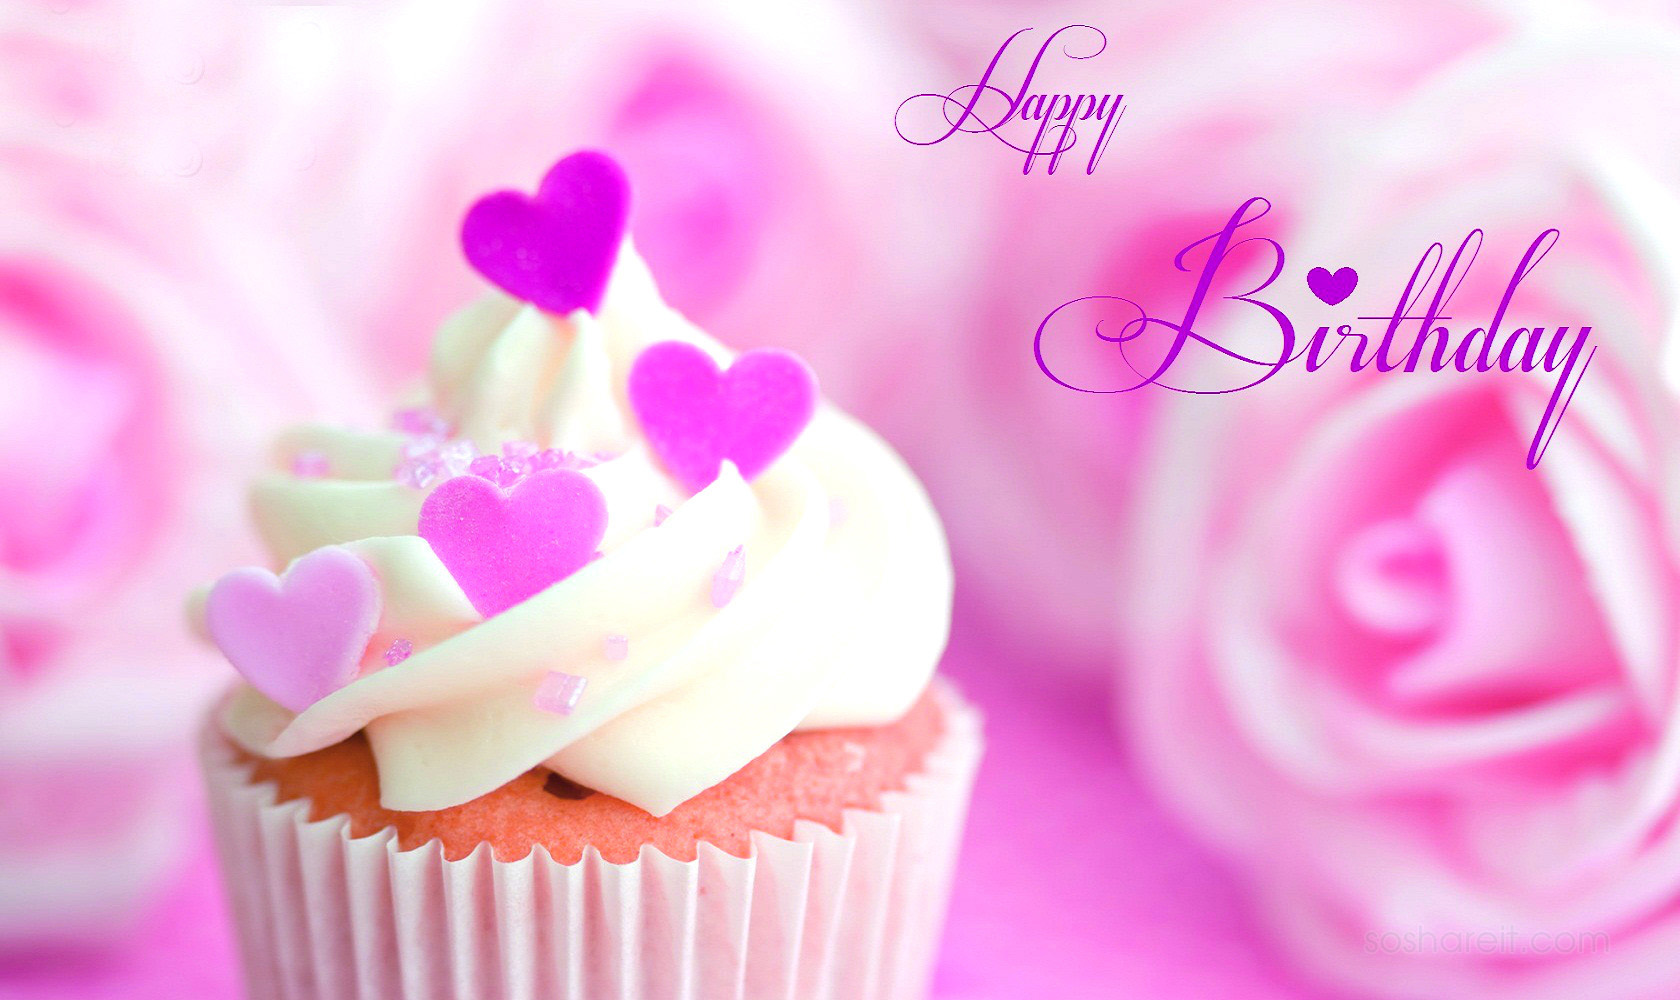 HAPPY BIRTHDAY AUNT WISHES & WALLPAPERS